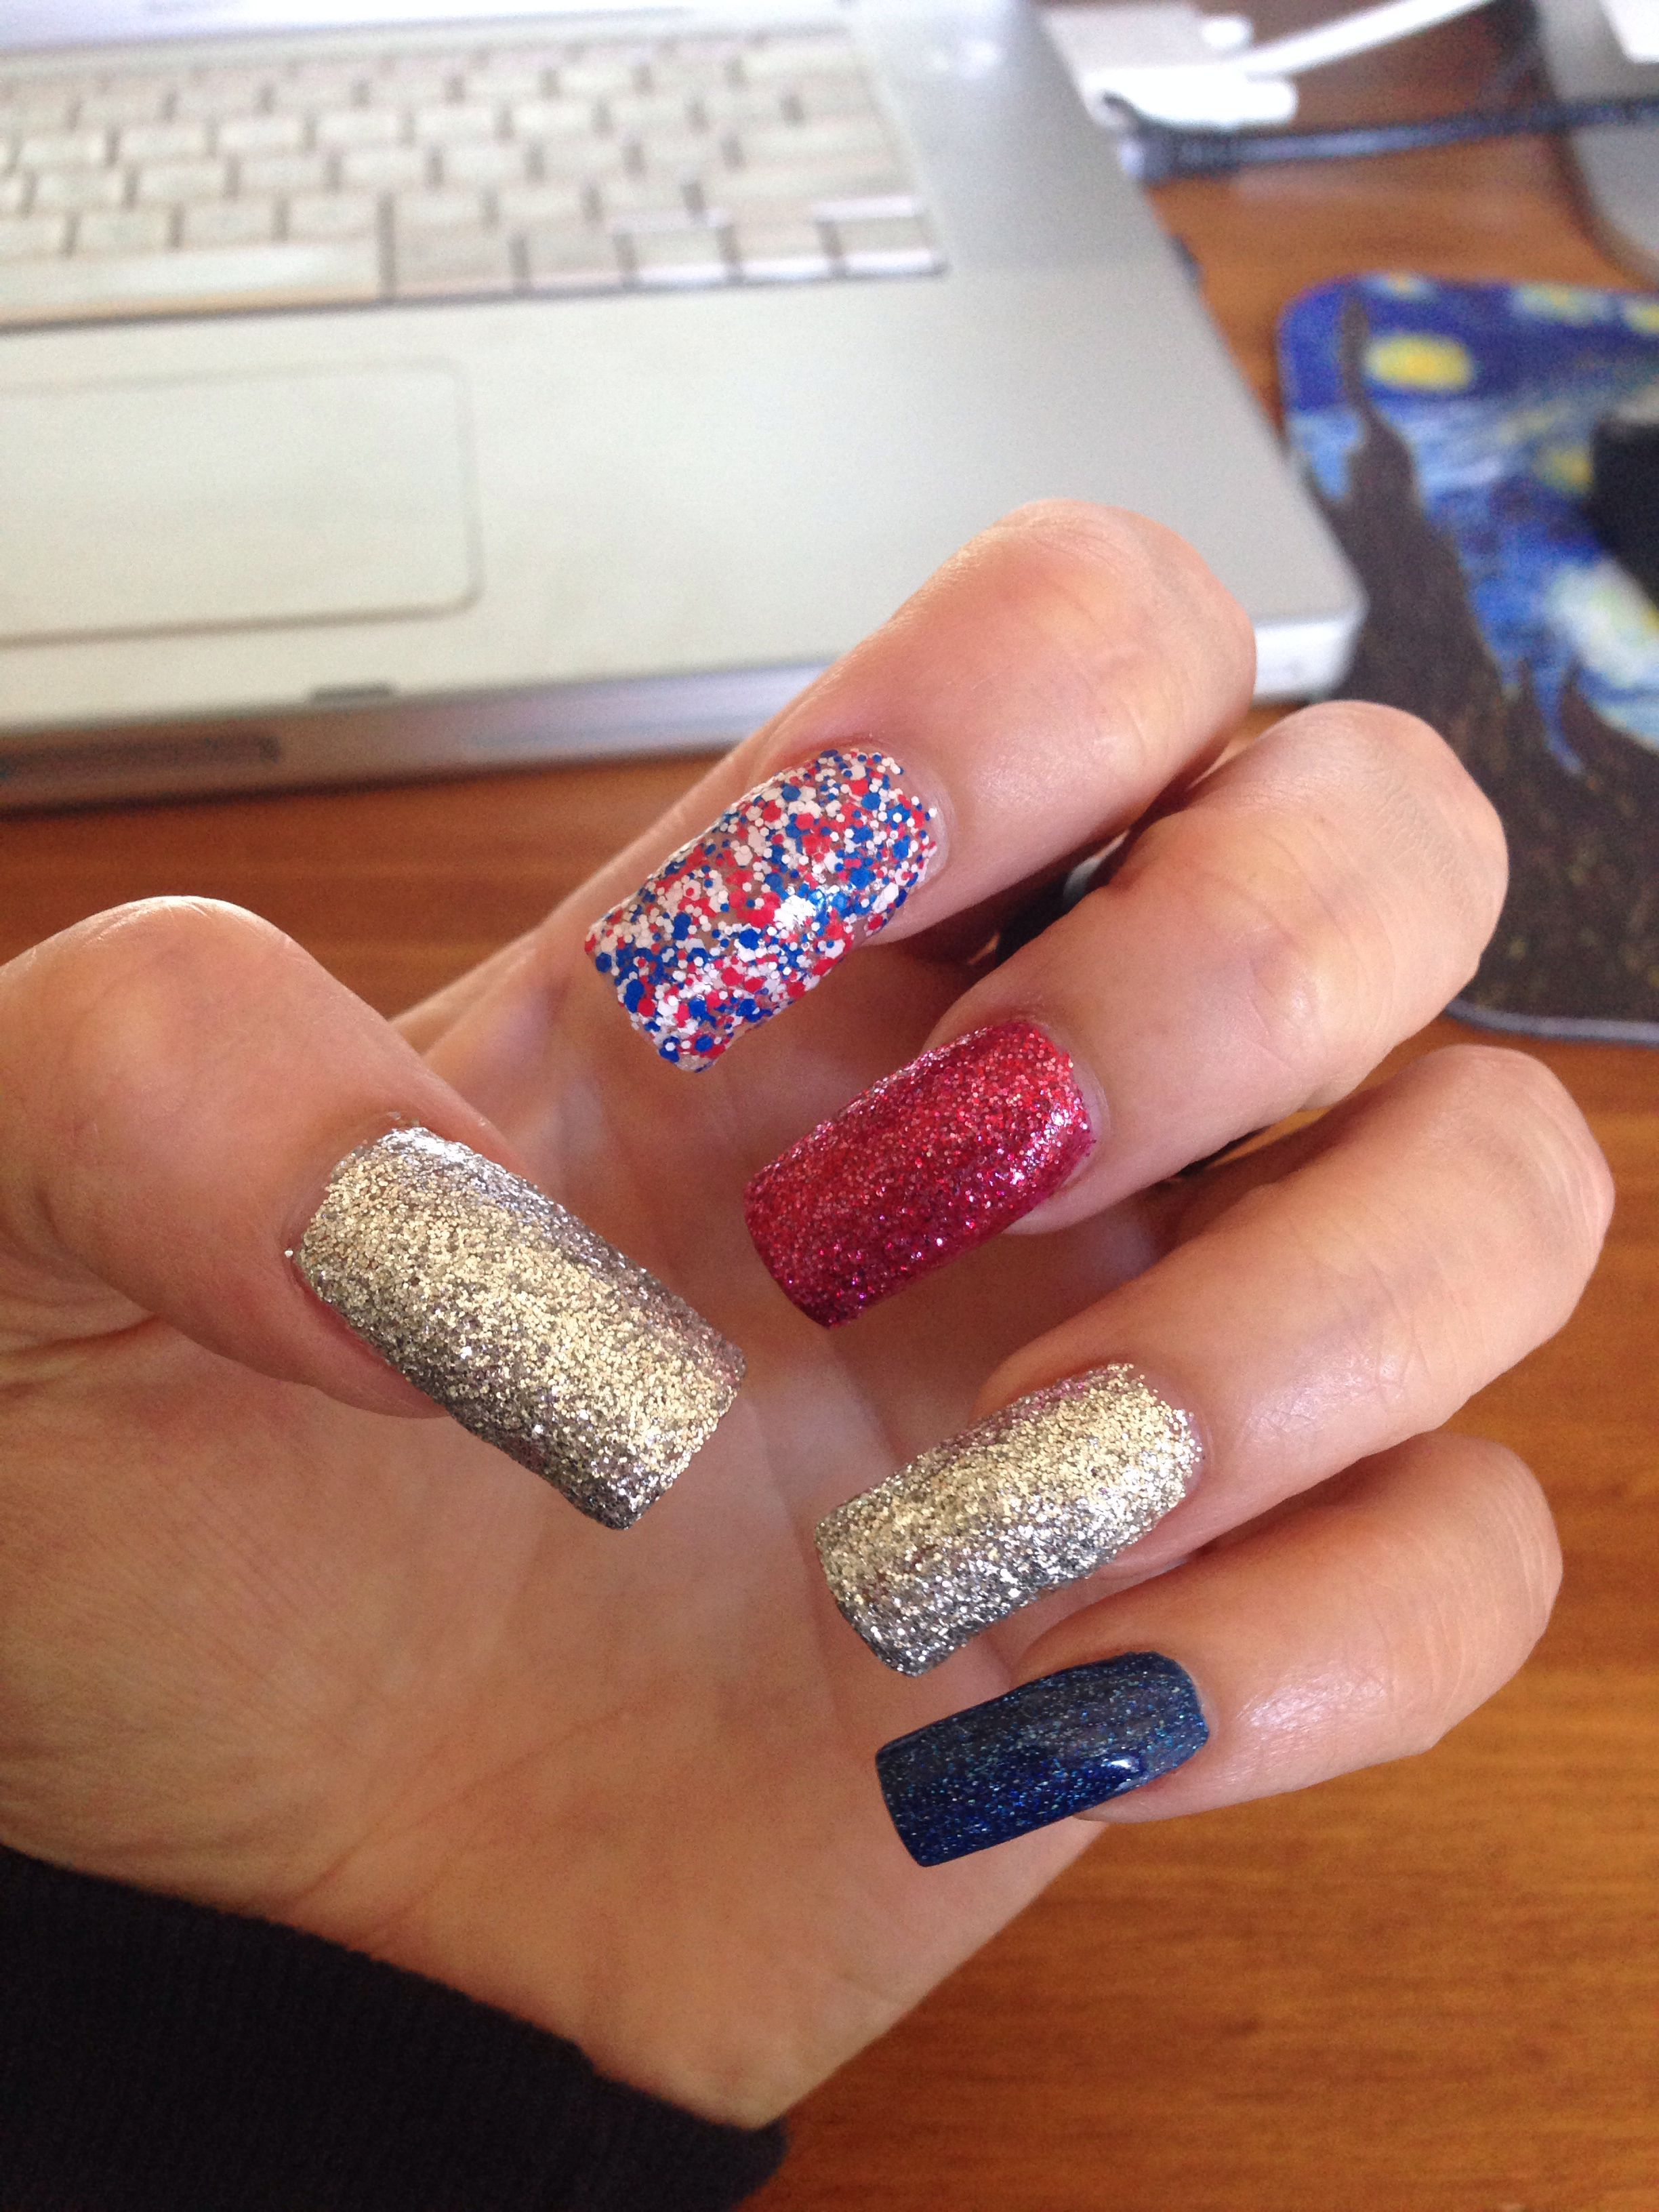 Nails by Isabel - At Your Fingertips - Watsonville, CA